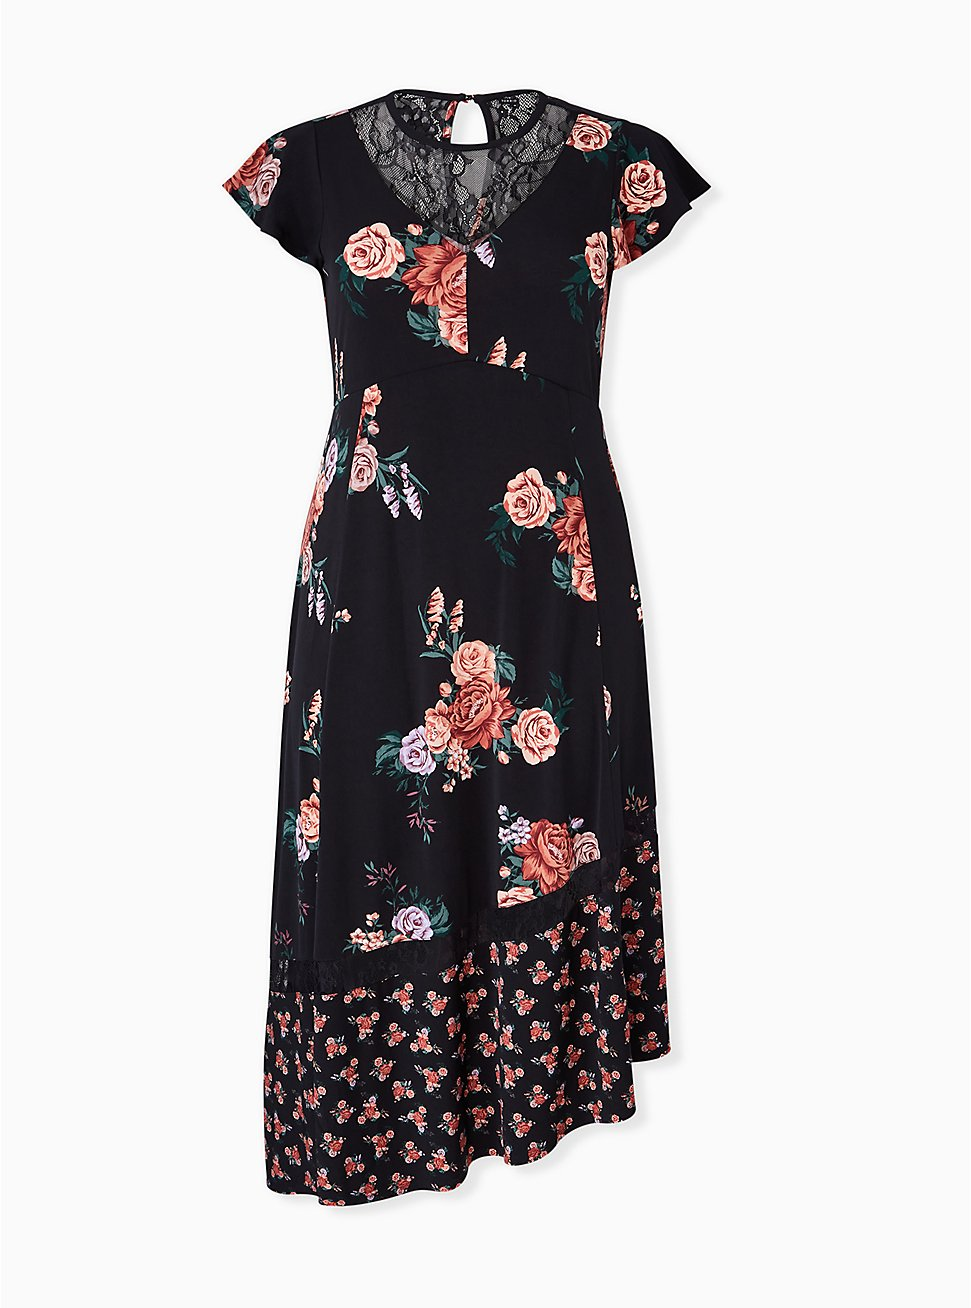 Plus Size Black Floral Studio Knit Asymmetrical Midi Dress, FLORAL - BLACK, hi-res